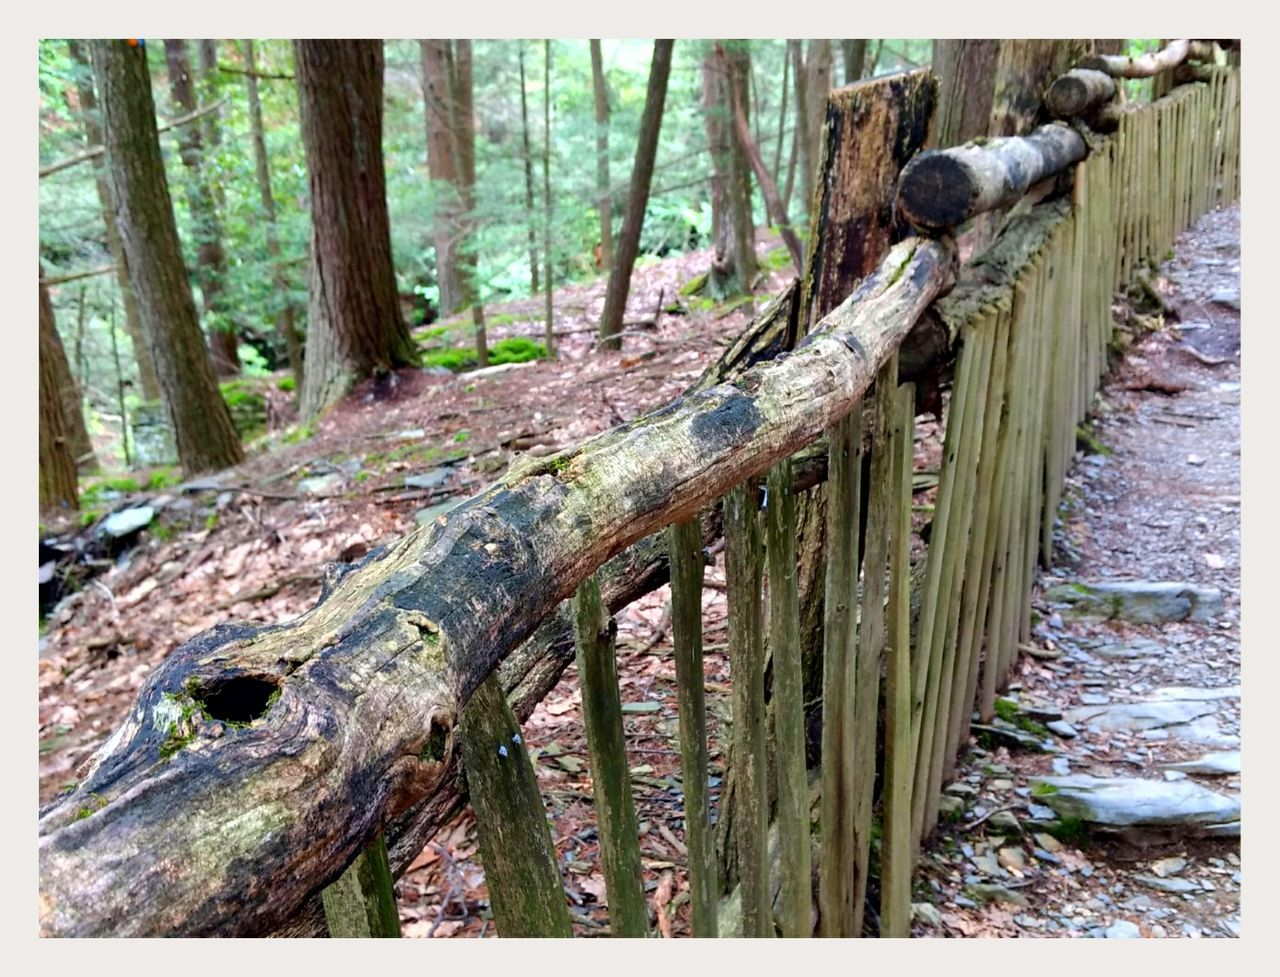 tree trunk, tree, forest, nature, wood - material, outdoors, day, woodland, no people, moss, beauty in nature, close-up